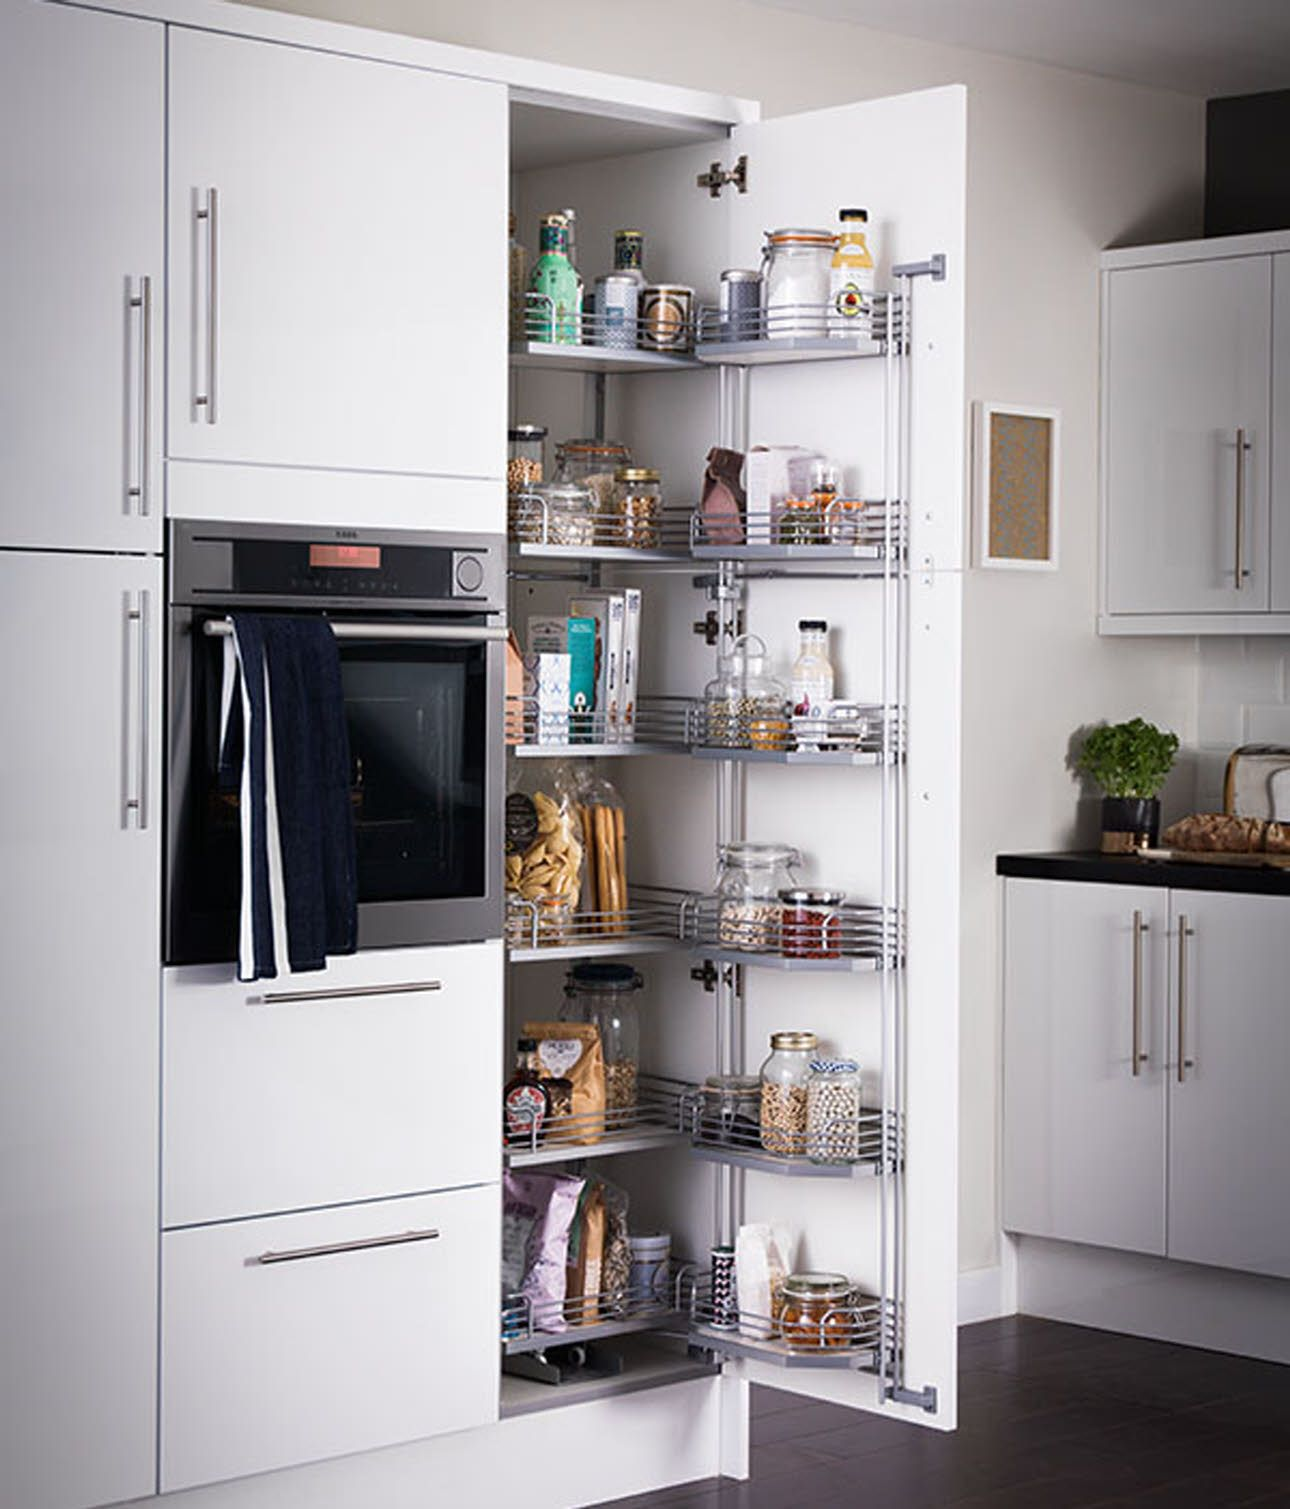 Eckhochschrank Dispenser Larder Springhill Kitchen Kitchen Design Innovation